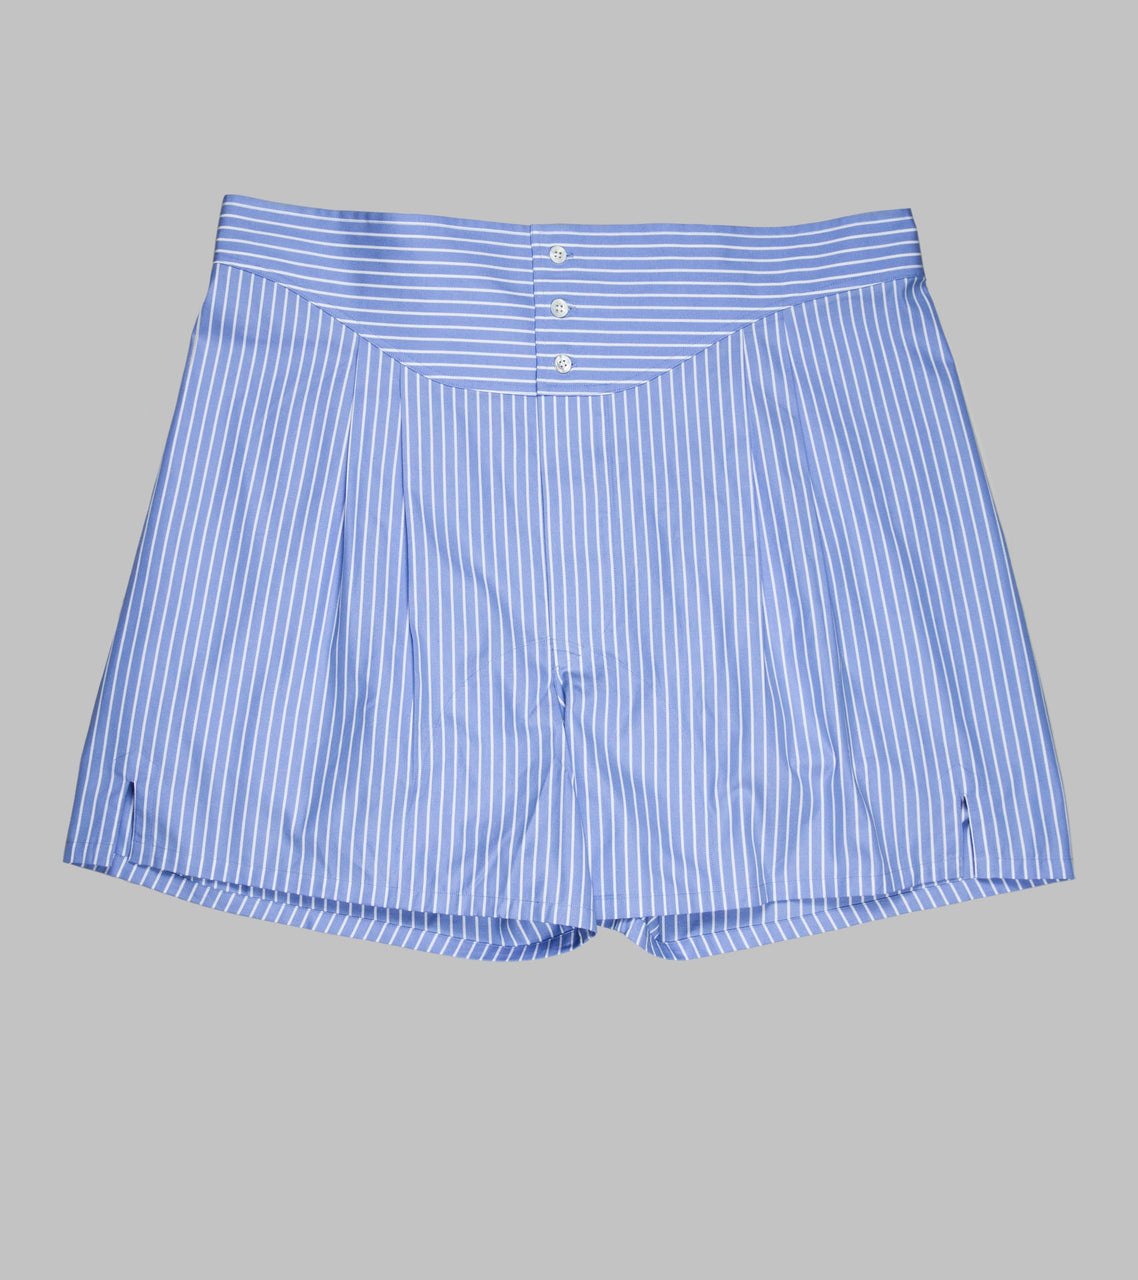 Bryceland's Boxers Striped Blue